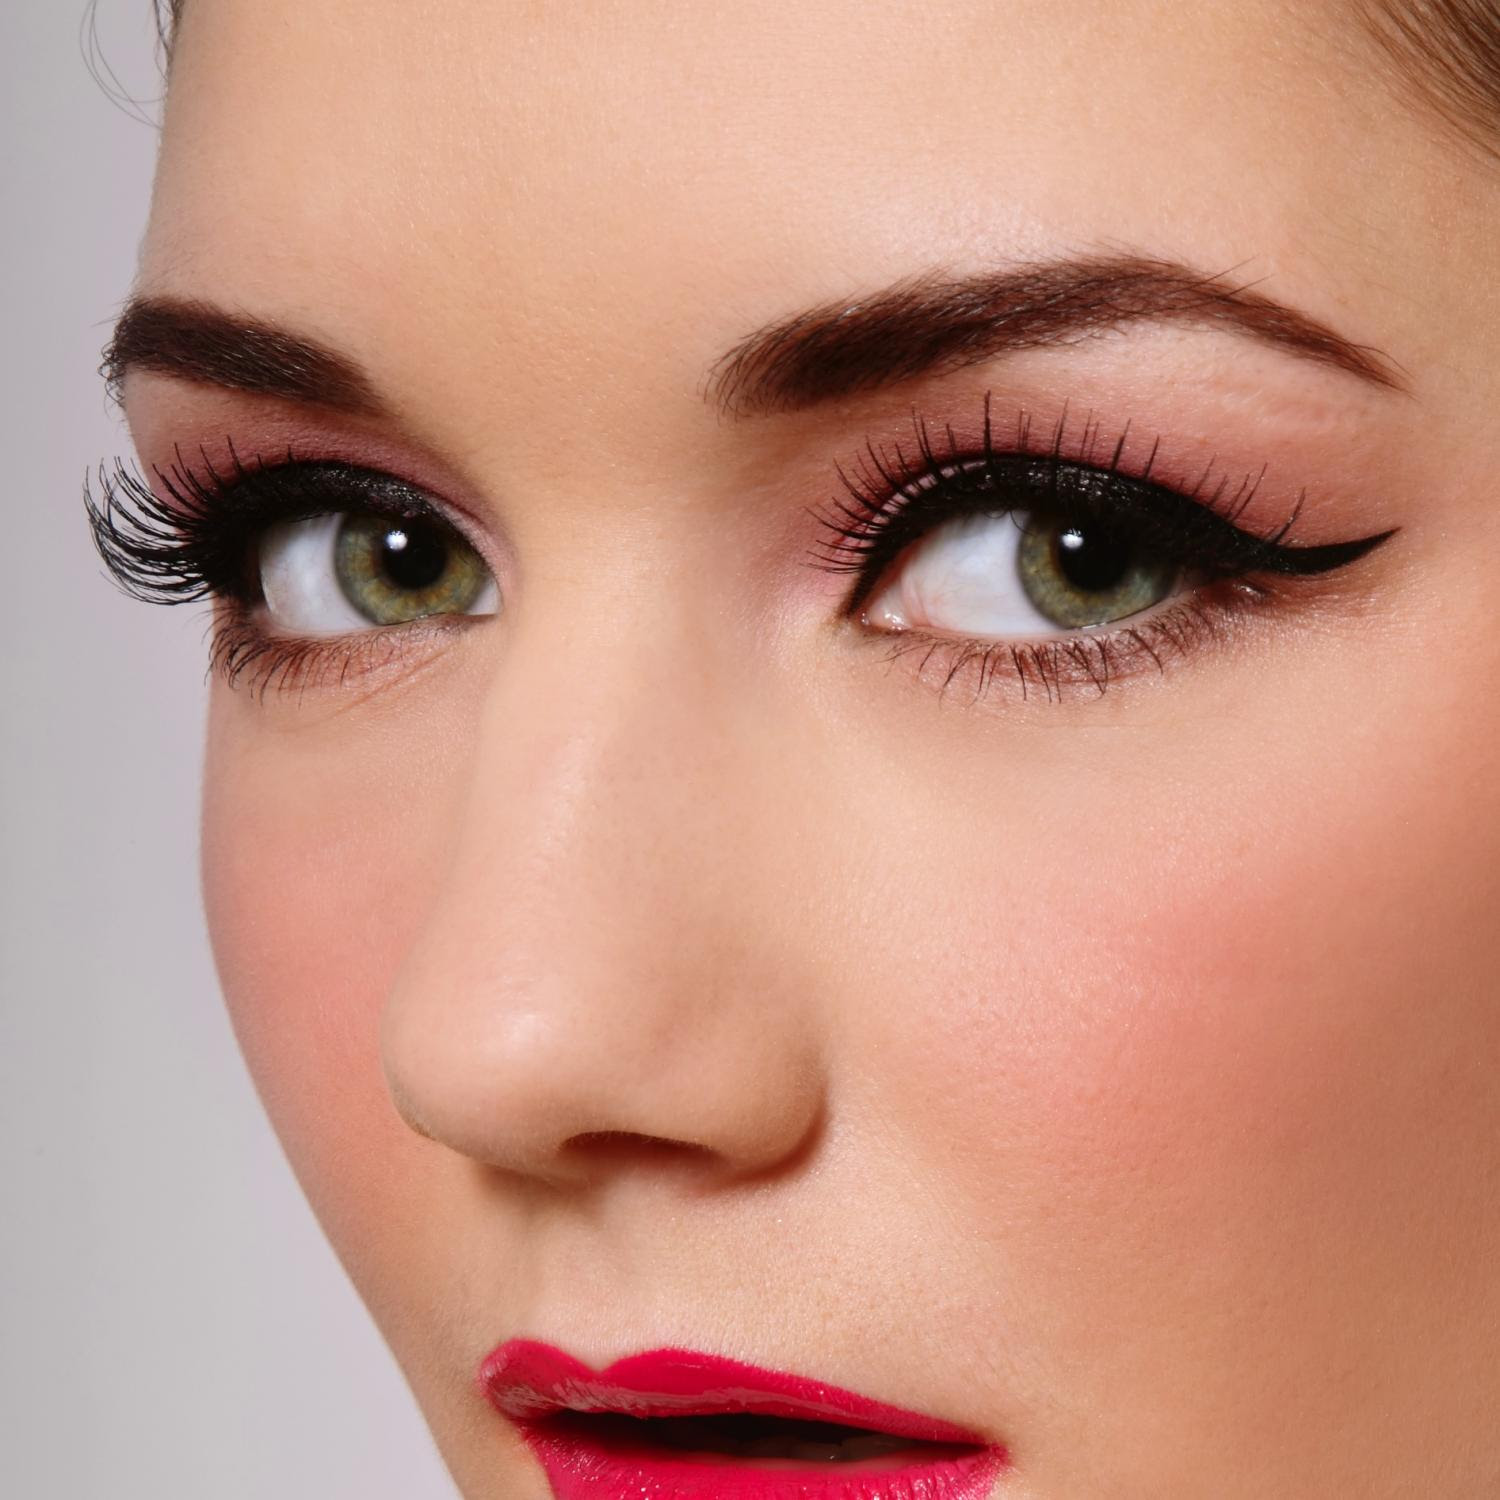 Natural Looking Makeup To Make You Feel Pretty ...